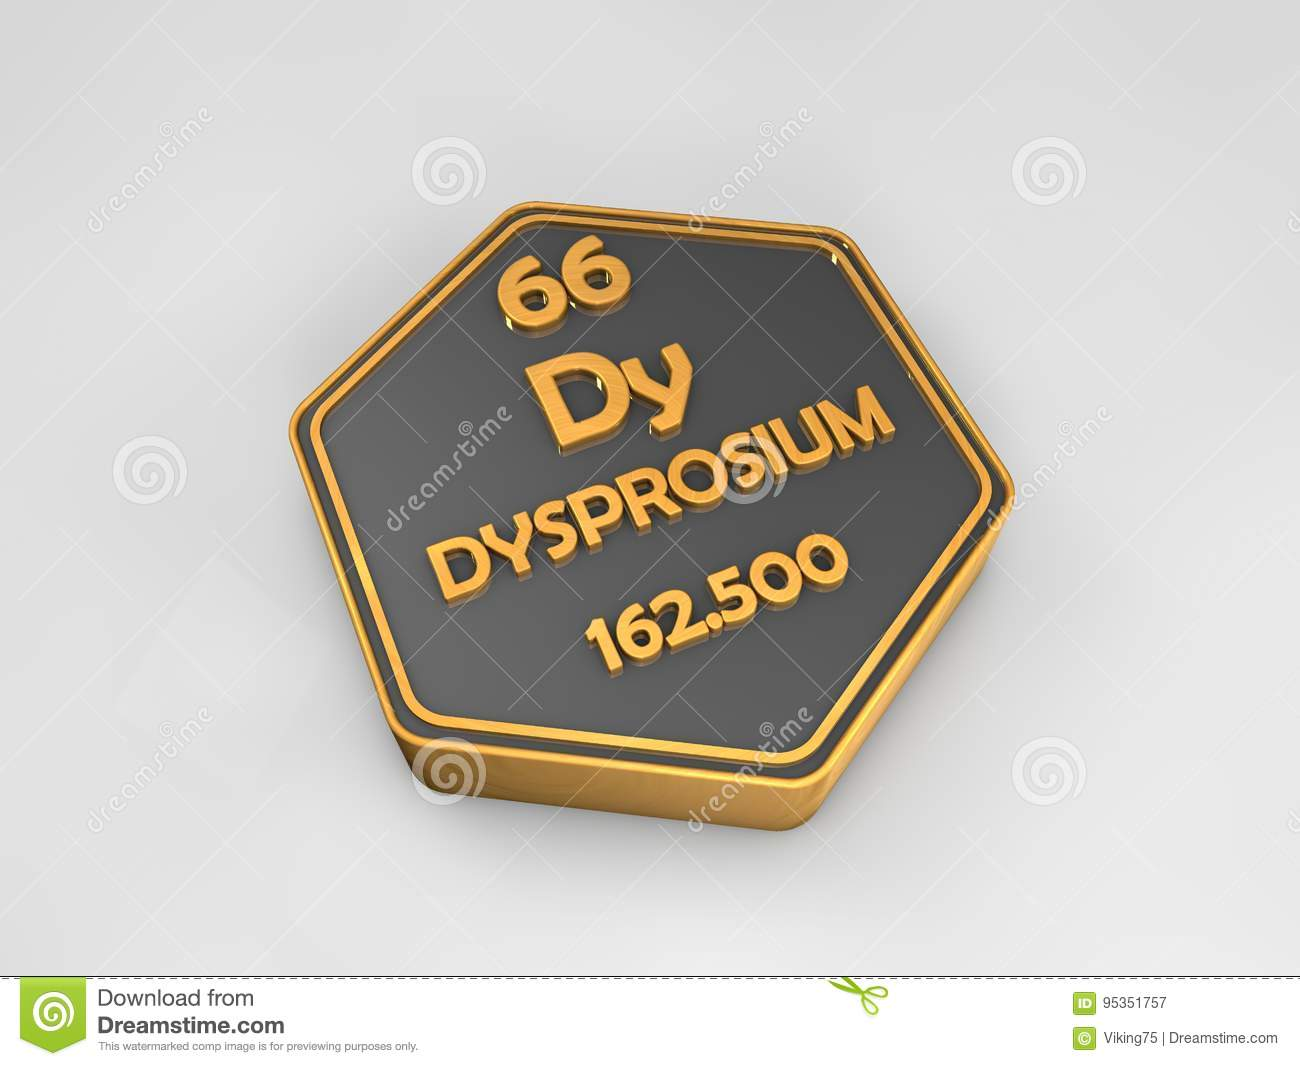 Periodic table dy images periodic table images dy periodic table gallery periodic table images dysprosium dy chemical element periodic table hexagonal shape royalty gamestrikefo Image collections